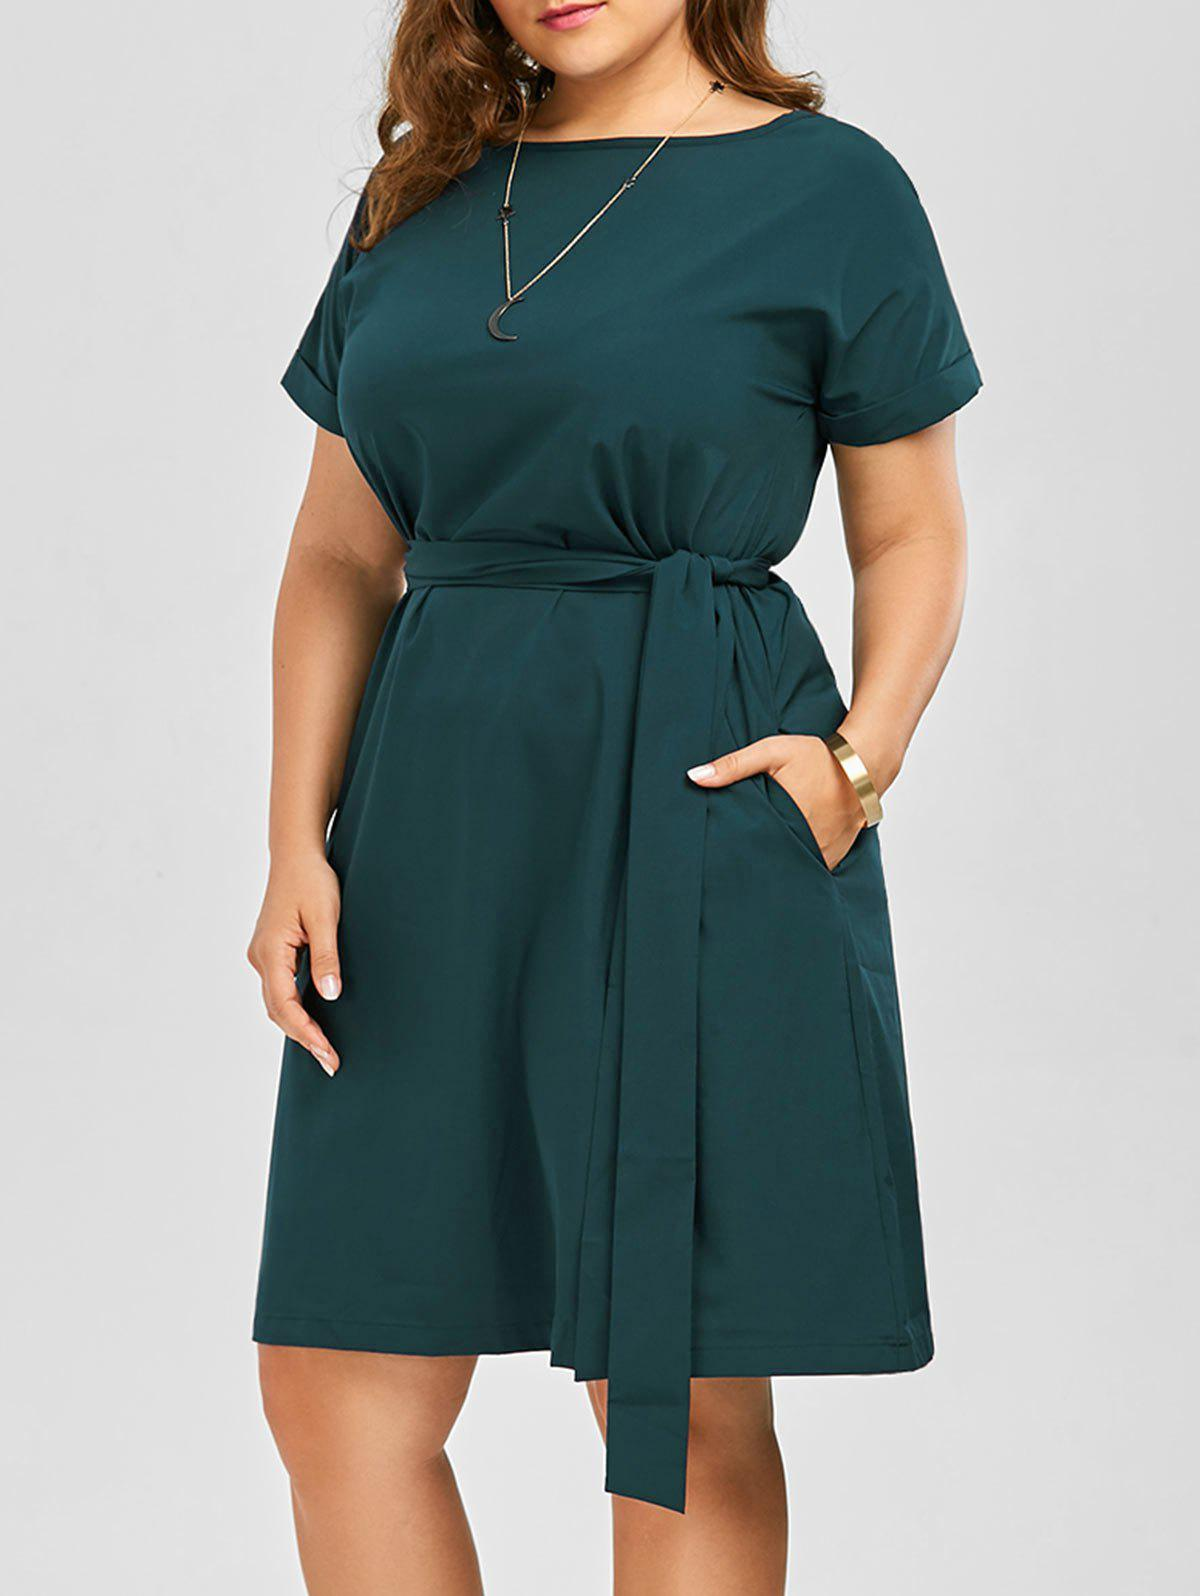 Plus Size Belted Knee Length Dress With Pockets plus size belted knee length dress with pockets